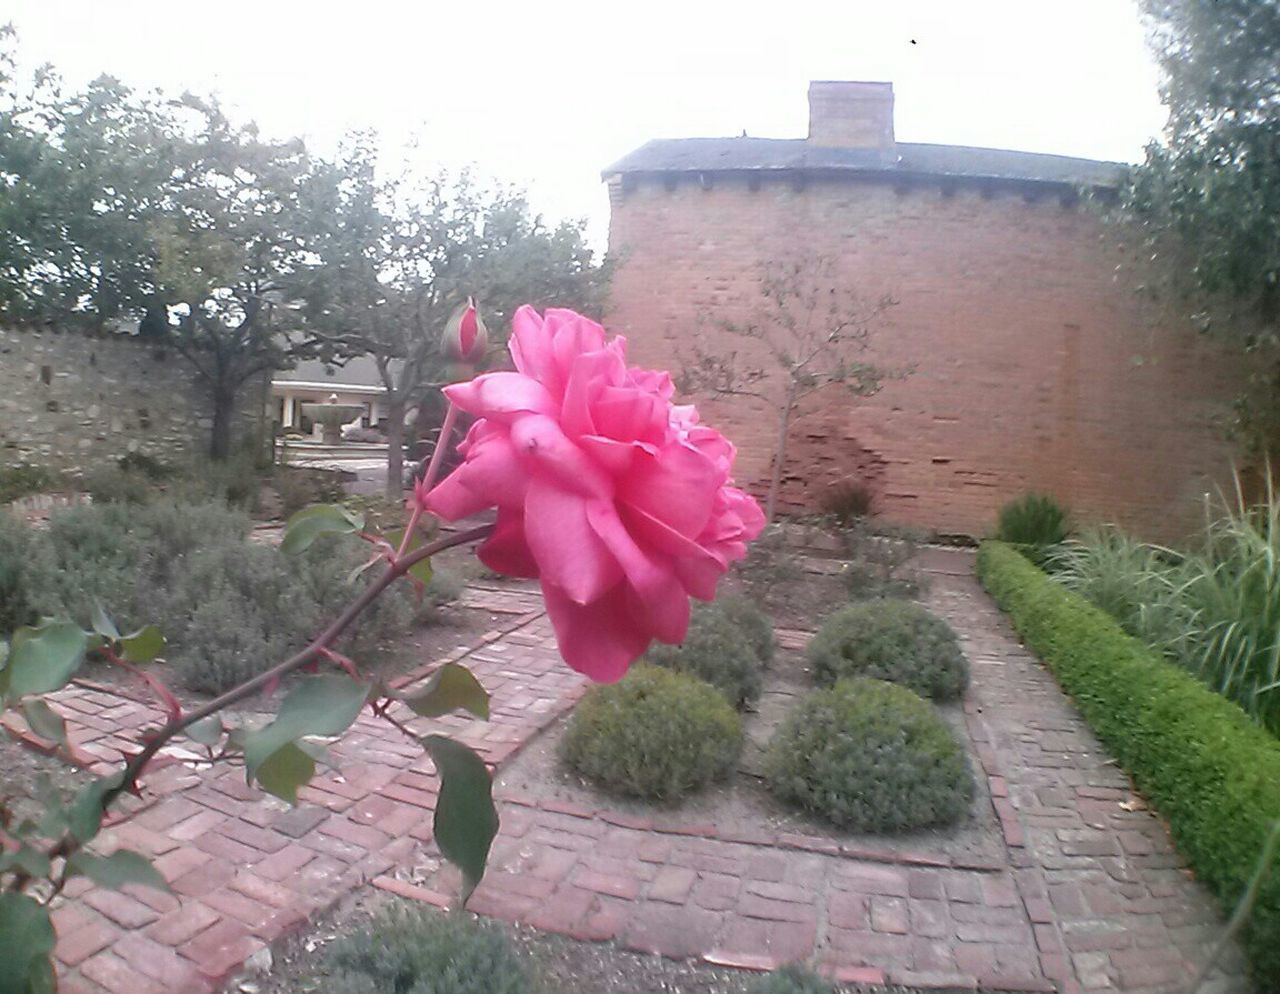 Monterey Ca Flower Porn Roses Eyeemphotography The Purist (no Edit, No Filter) No Edits No Filters . First Brick House Whailing Station Historical Place